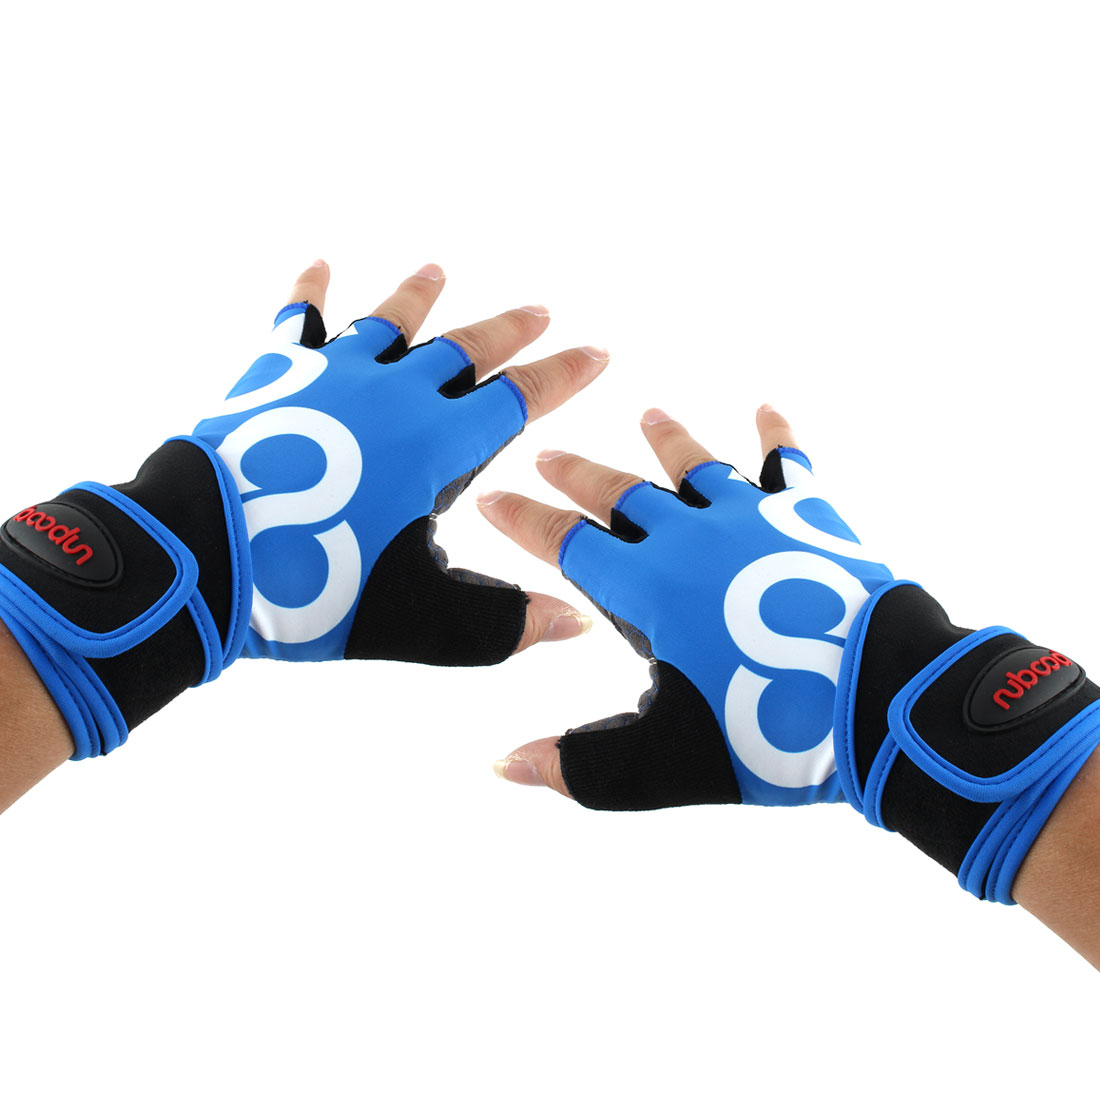 Men Polyester Exercise Sports Weightlifting Training Workout Half Finger Fitness Gloves Blue S Pair